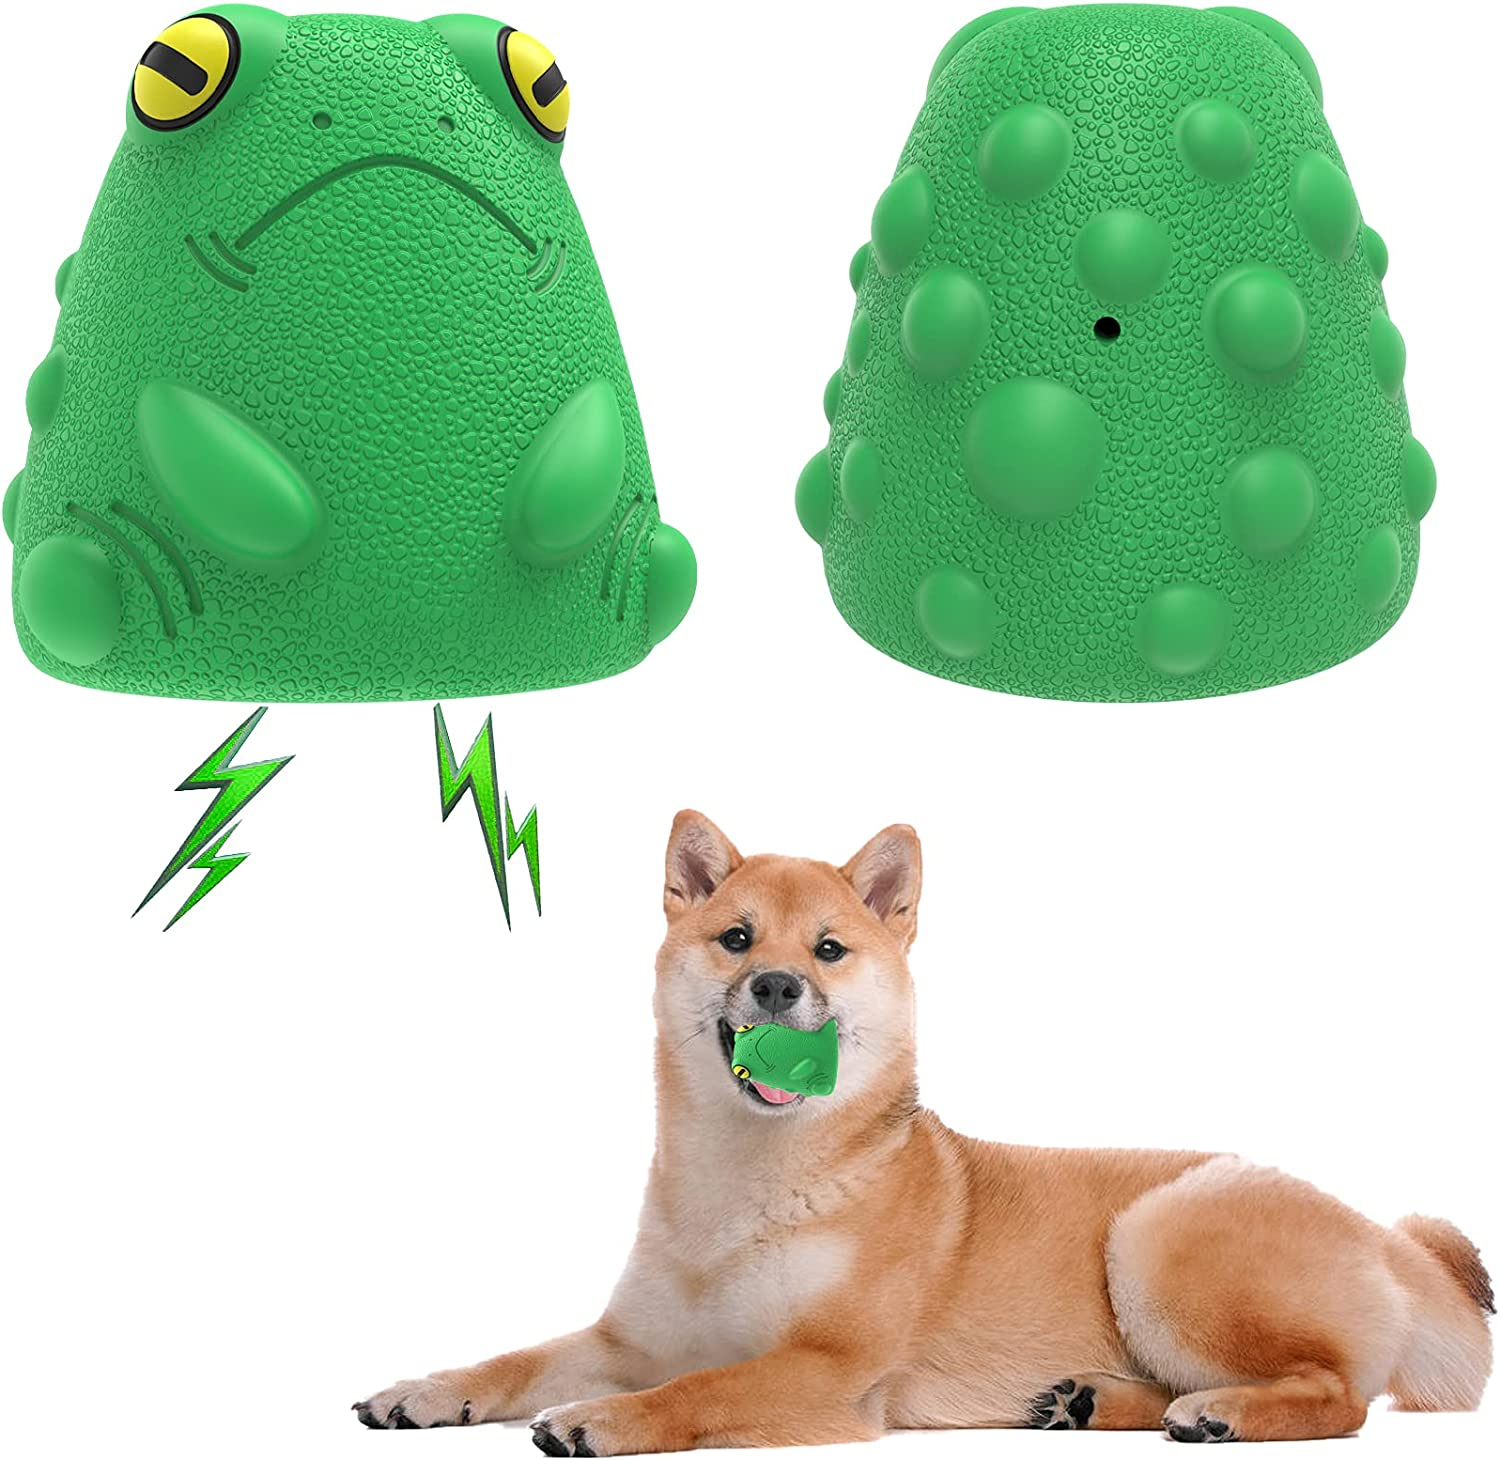 Dog Super beauty product restock quality top Chew Toys for Aggressive Almost Sque Chewers Max 71% OFF Indestructible